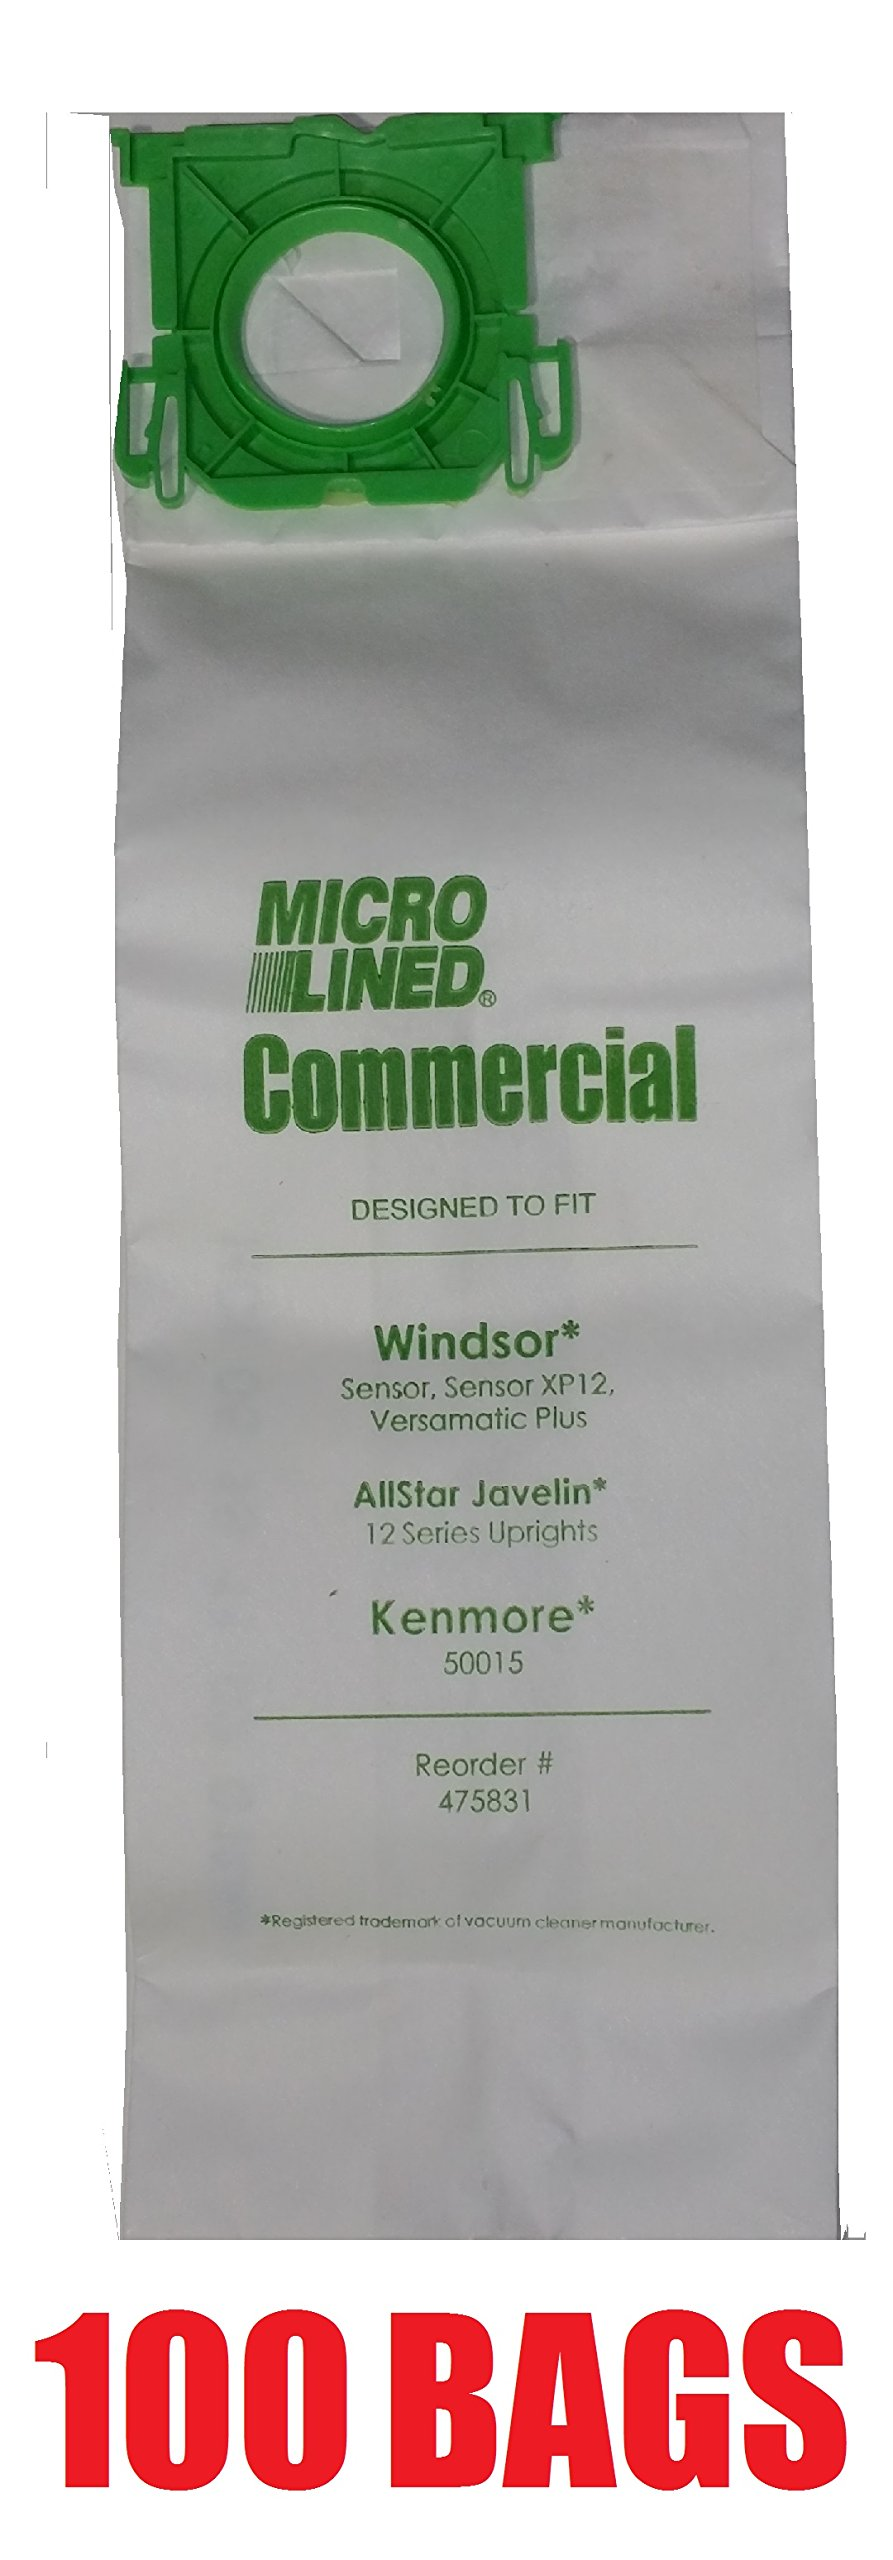 100 Sebo, Windsor Sensor Micro-Lined Commercial Upright Vacuum Bags, Fits 5093AM, 5300. 100 Pack. by Micro Lined DVC